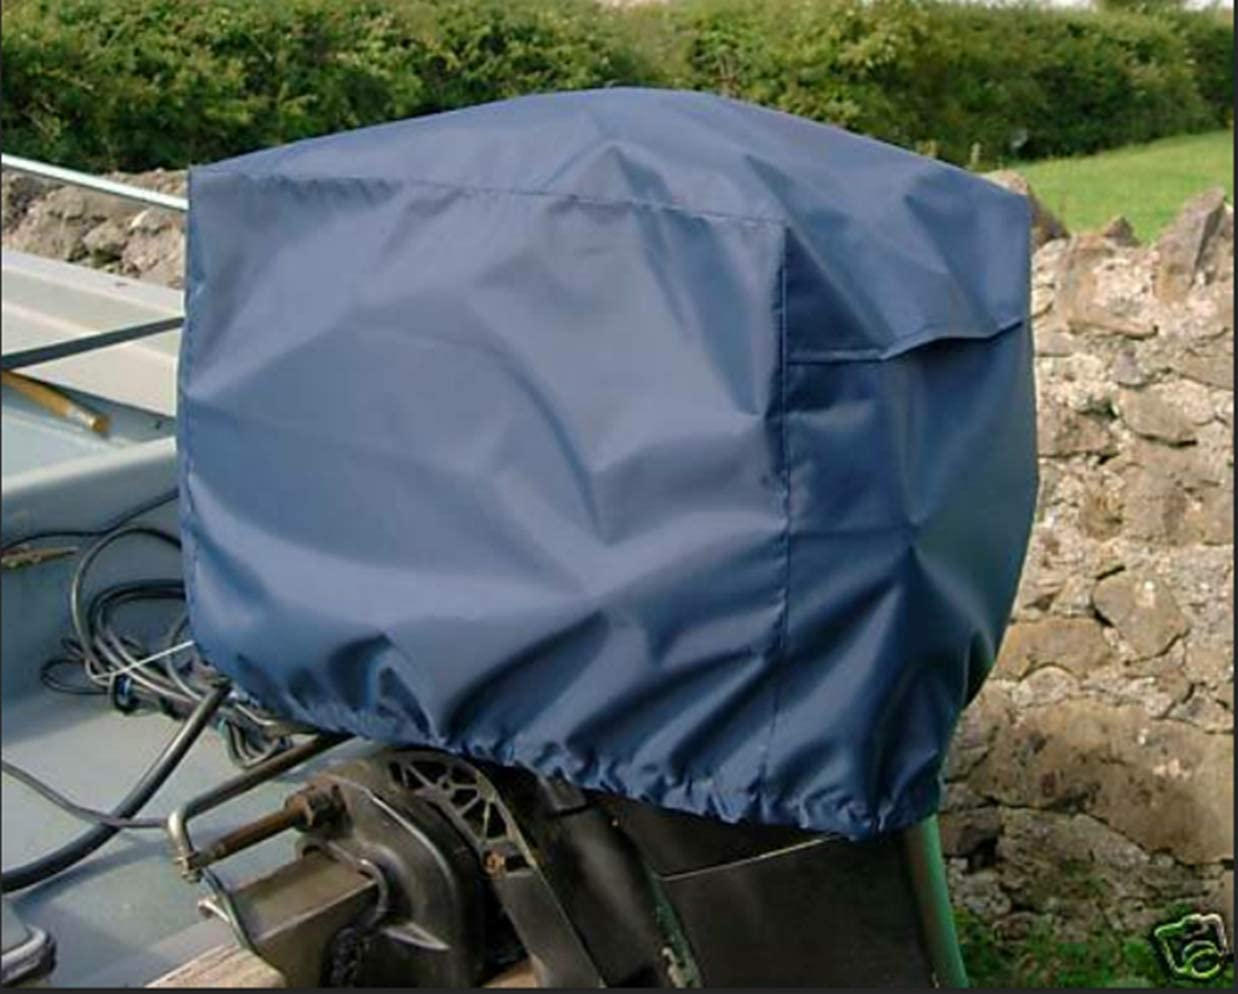 Heavy Duty Outboard Motor Cover 600D Waterproof Boat Motor Hood Cover Upgraded Rainproof UV Resistant with Thick Polyester Fabric